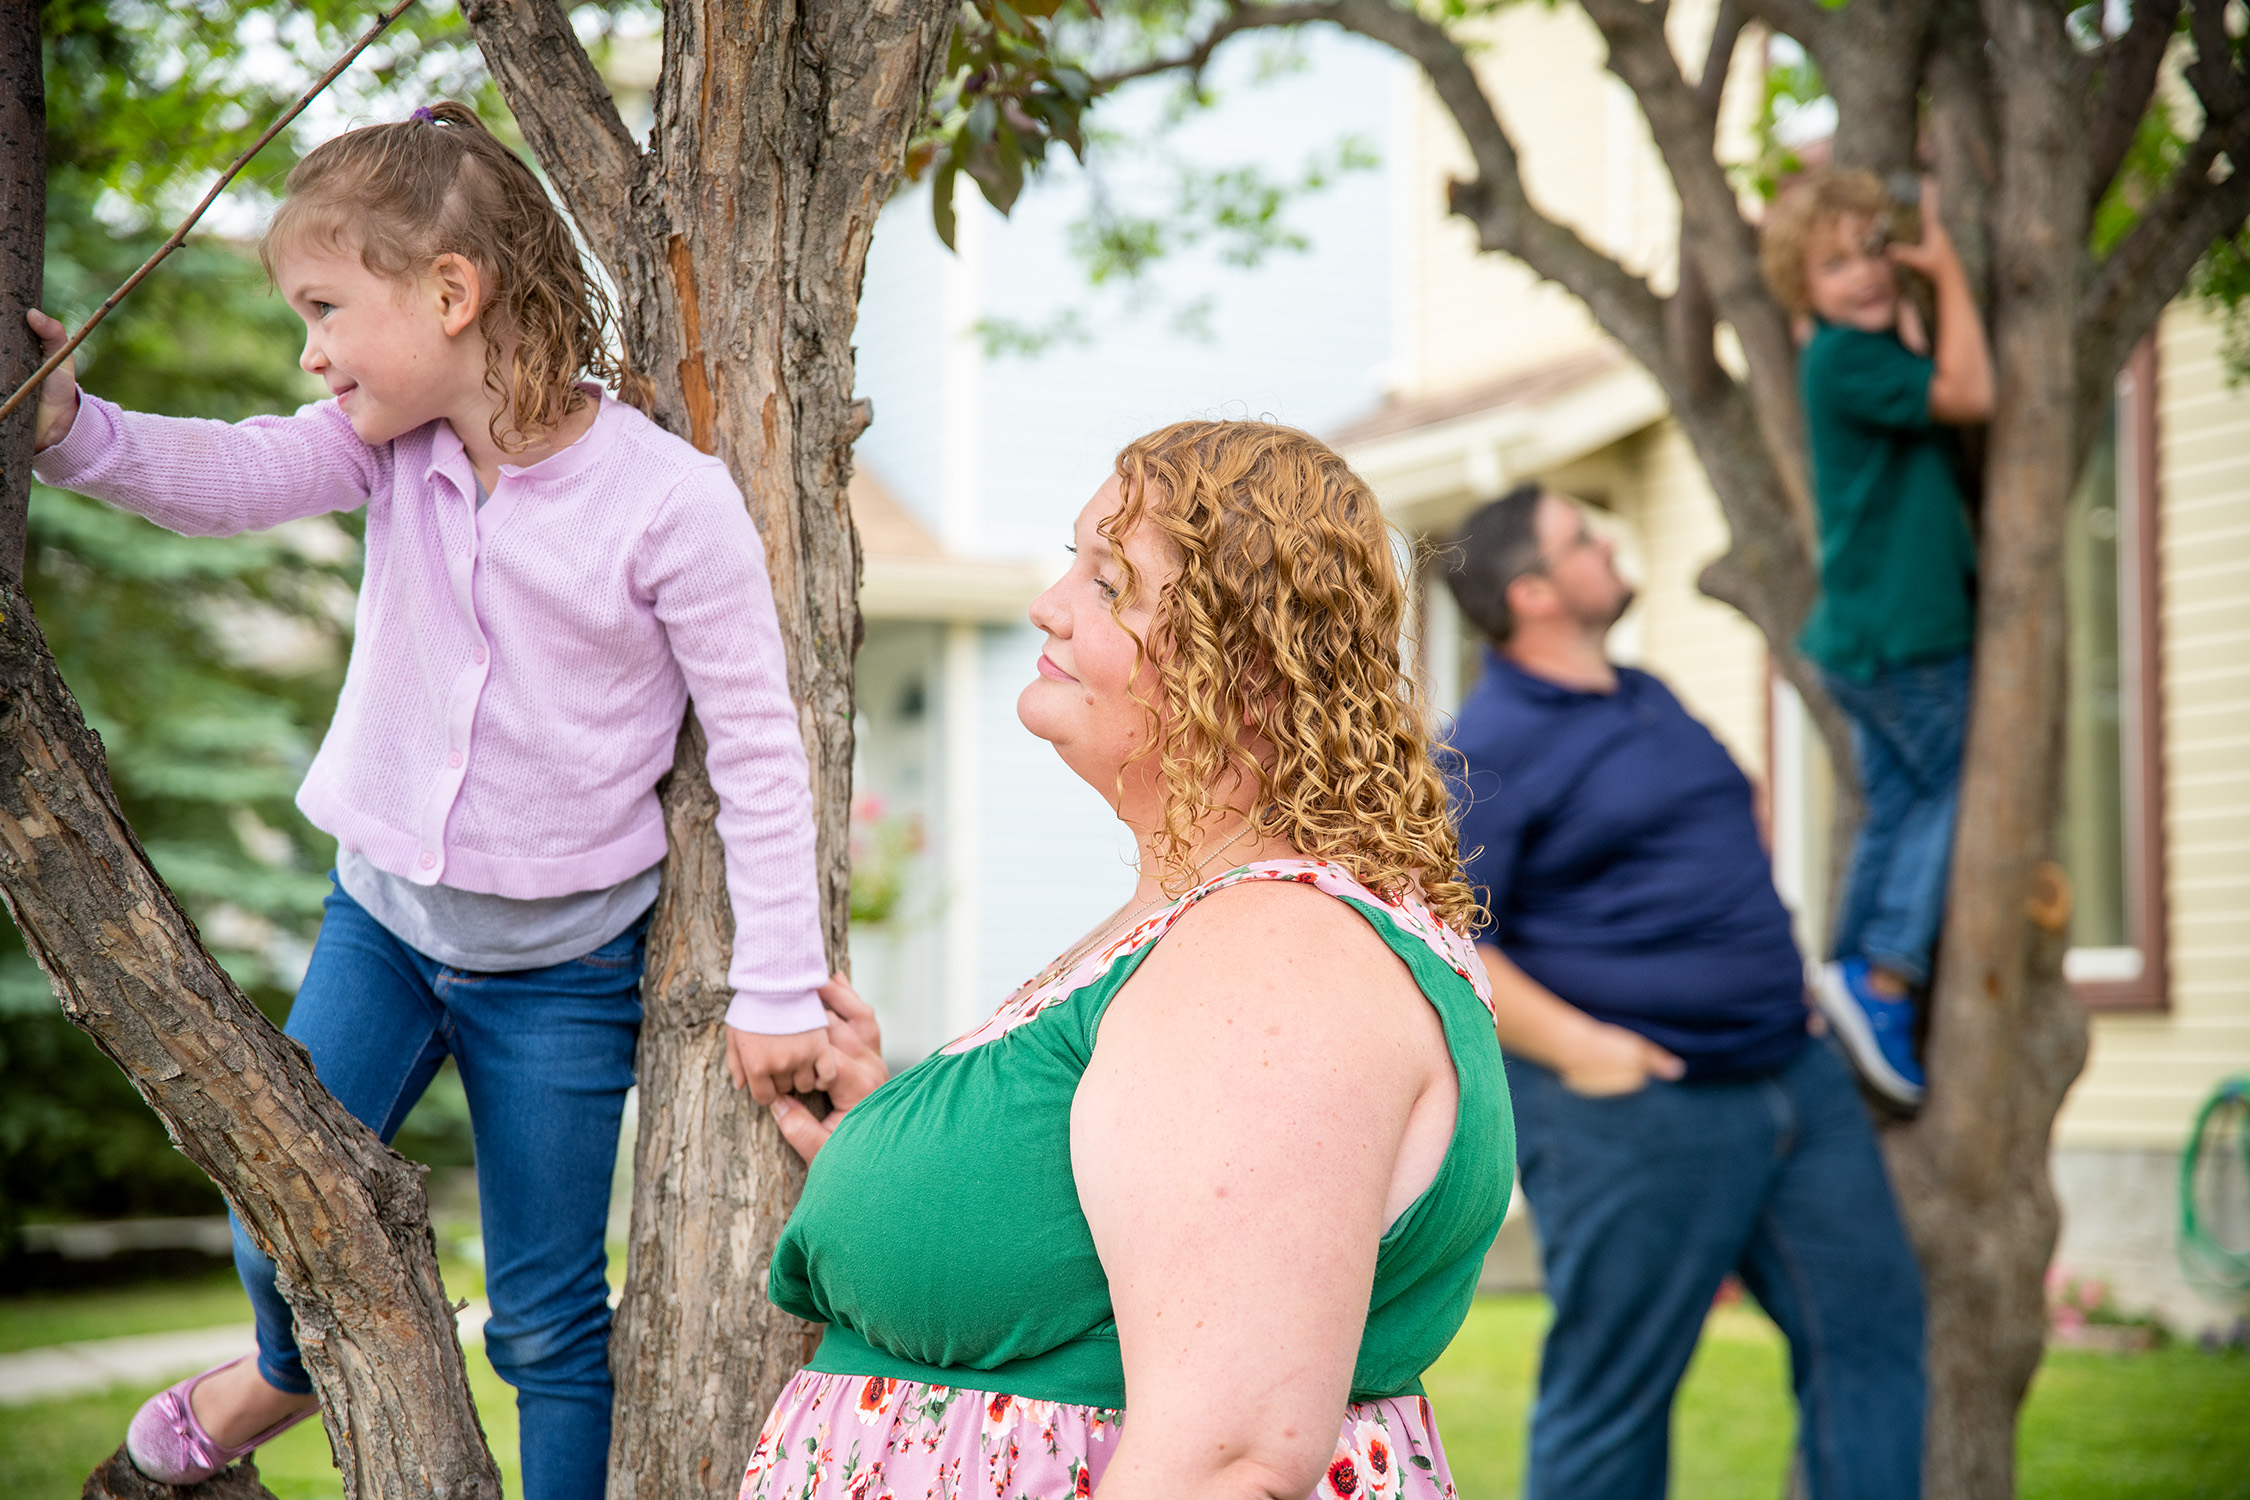 Tova Fertal with her daughter Clara, 4, while David, her husband, plays with their son Elliot, 6. (Photograph by Bryce Meyer)